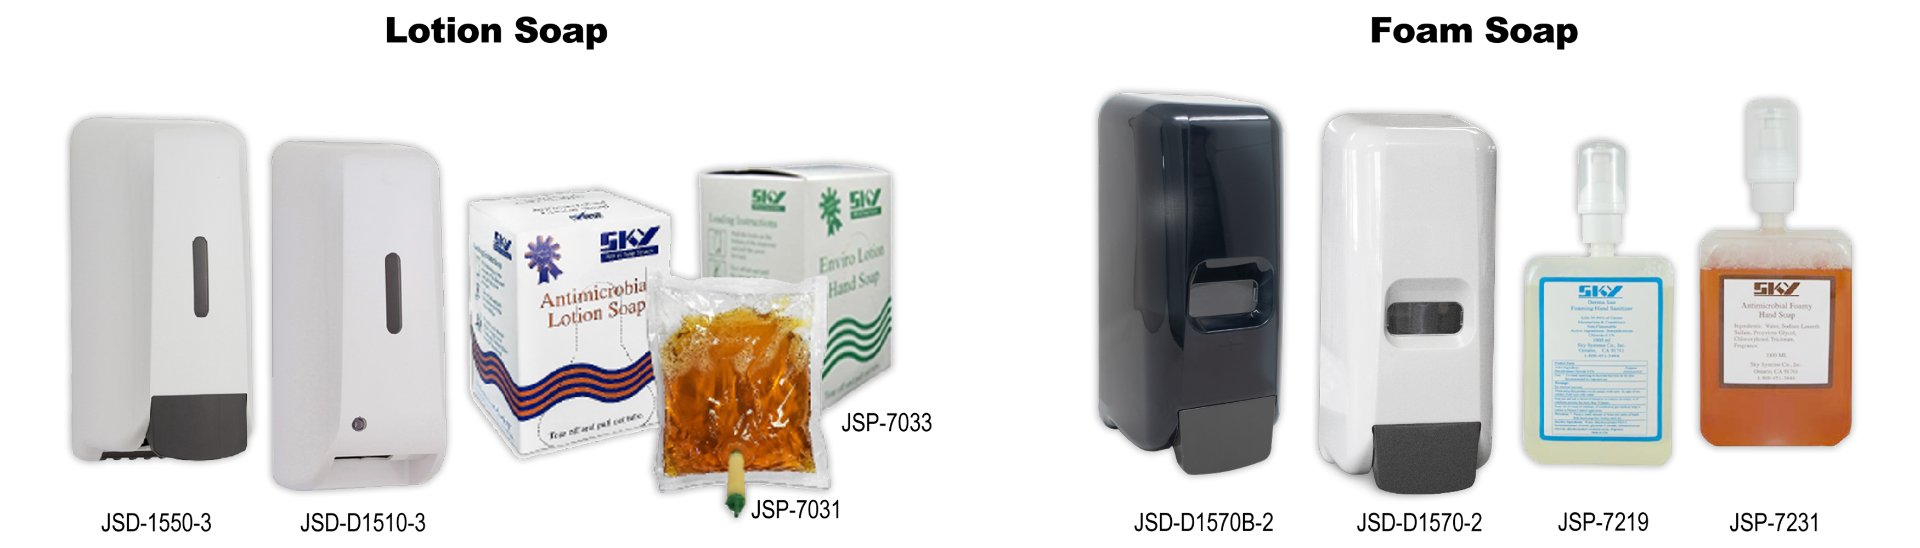 Lotion Soap & Dispensers